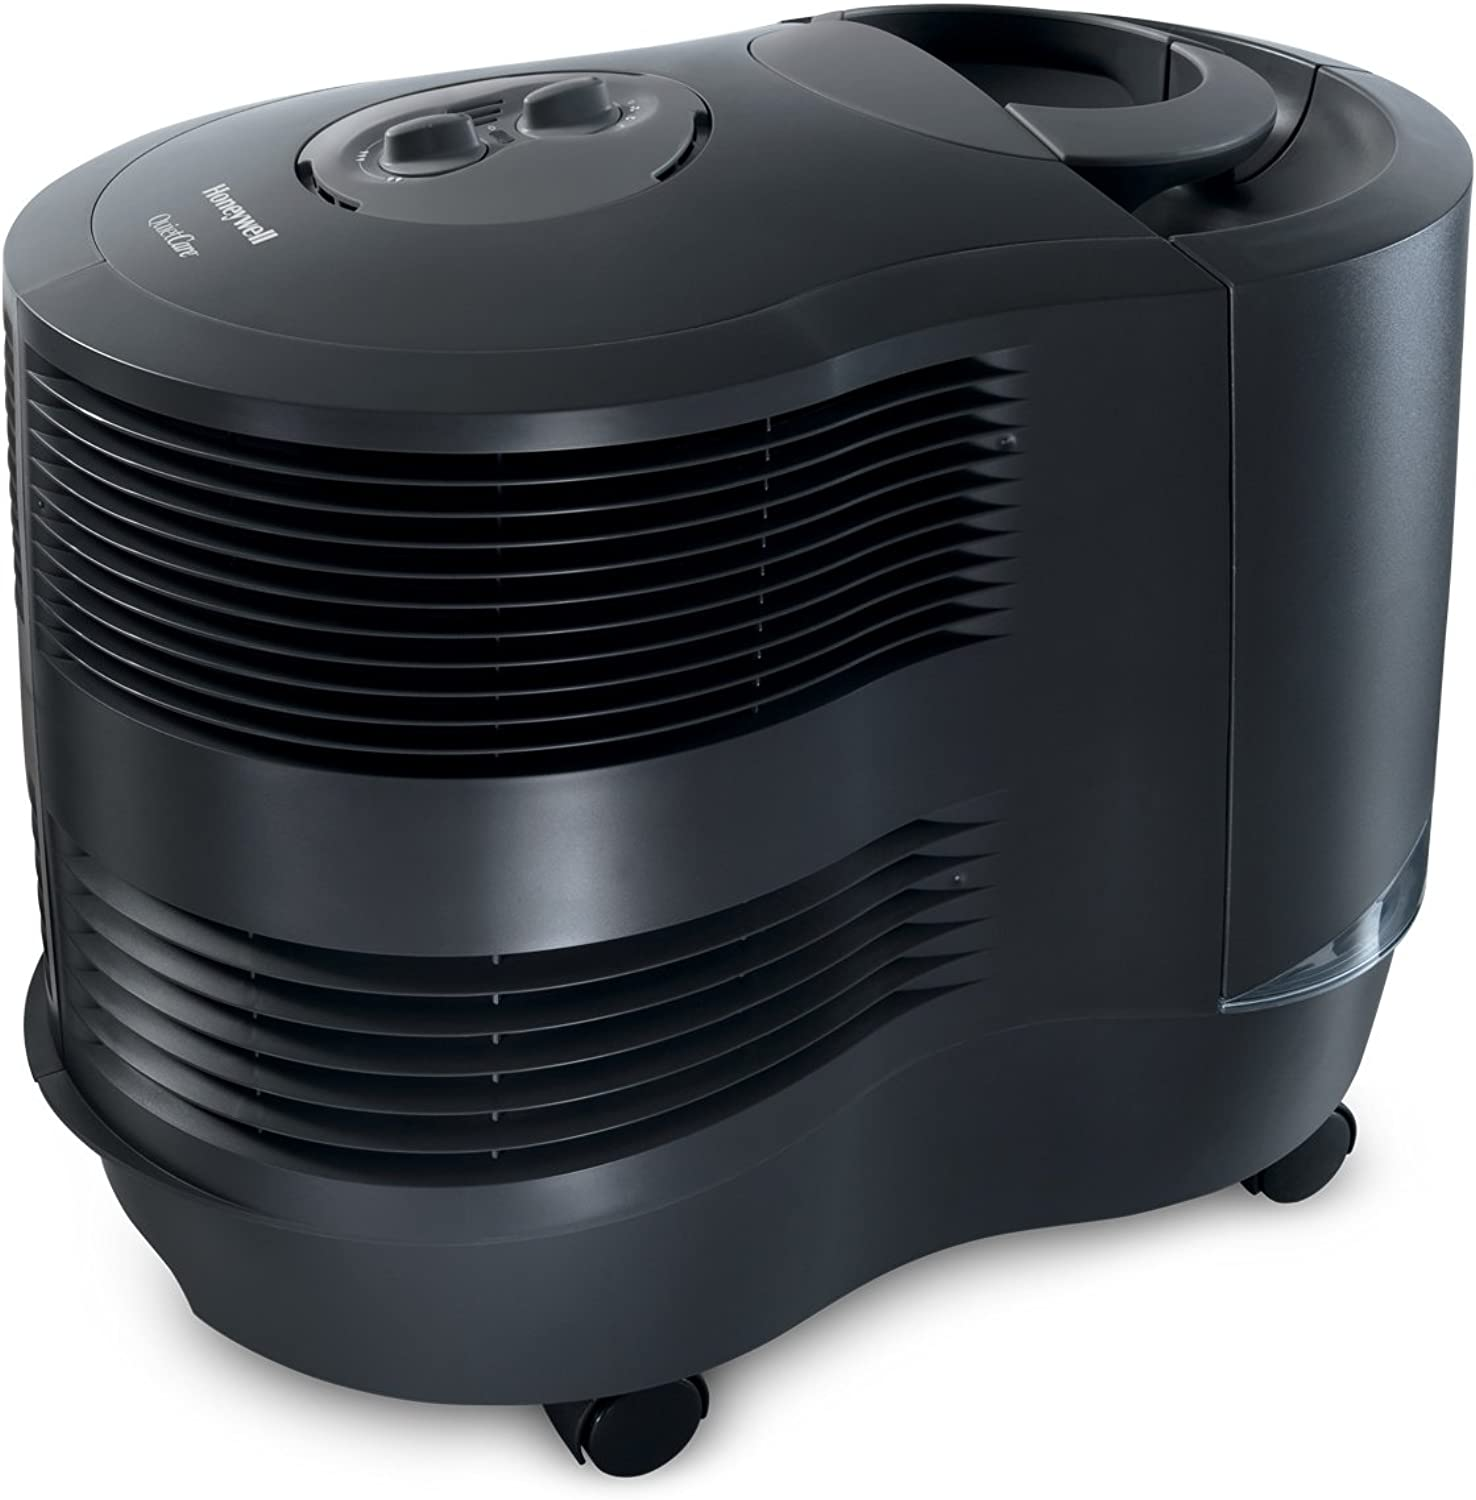 Honeywell HCM6011GV1 Cool Moisture Humidifier Black With Auto Shut-Off, Variable Settings, Adjustable Humidistat & Wicking Filter for Large & Multi Rooms, Bedroom, Baby Room